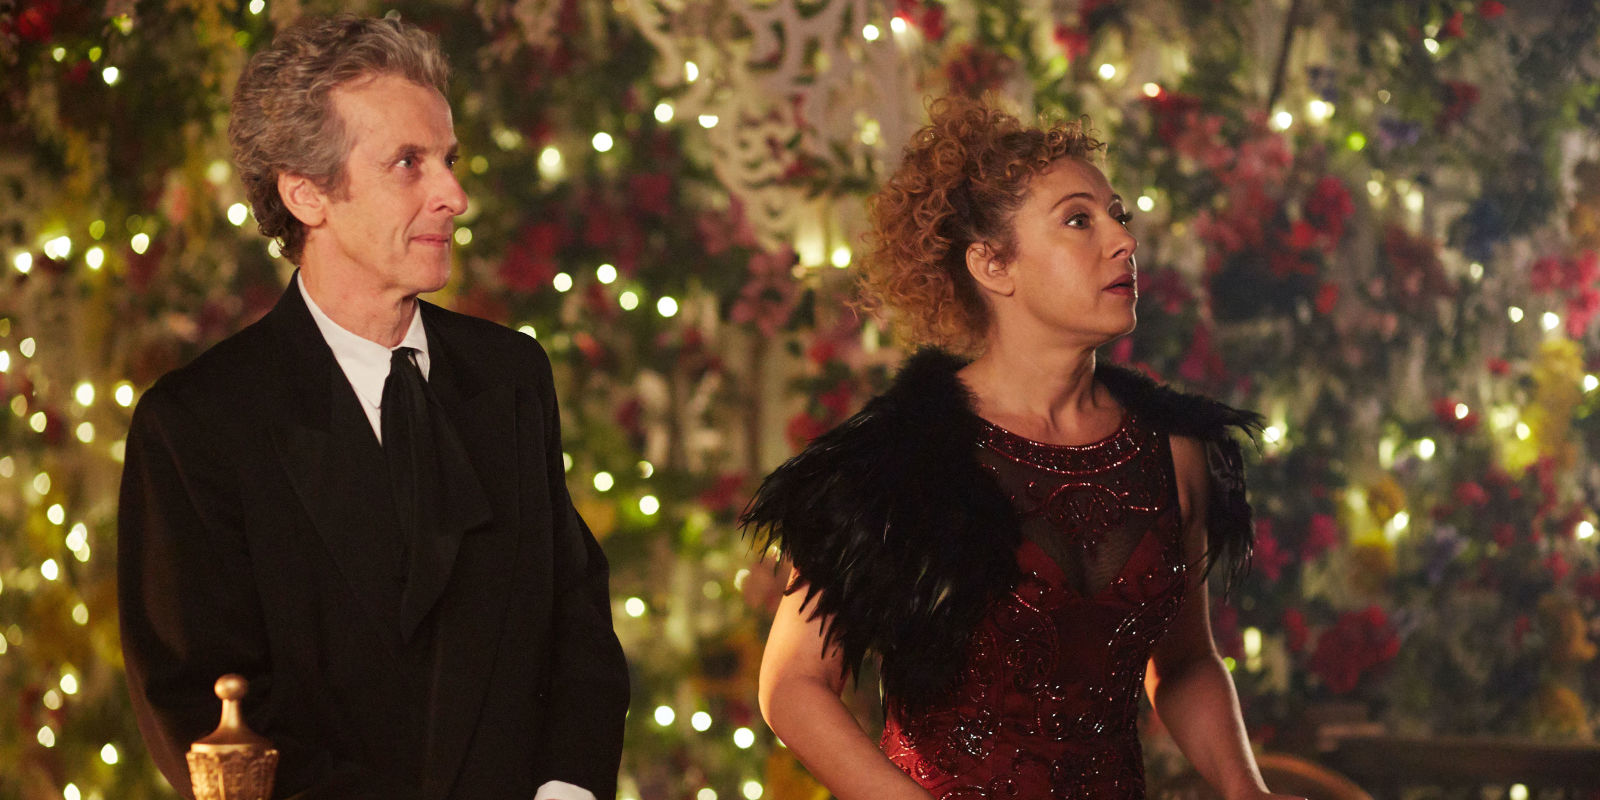 Doctor Who review: 'The Husbands of River Song' is not a classic ...